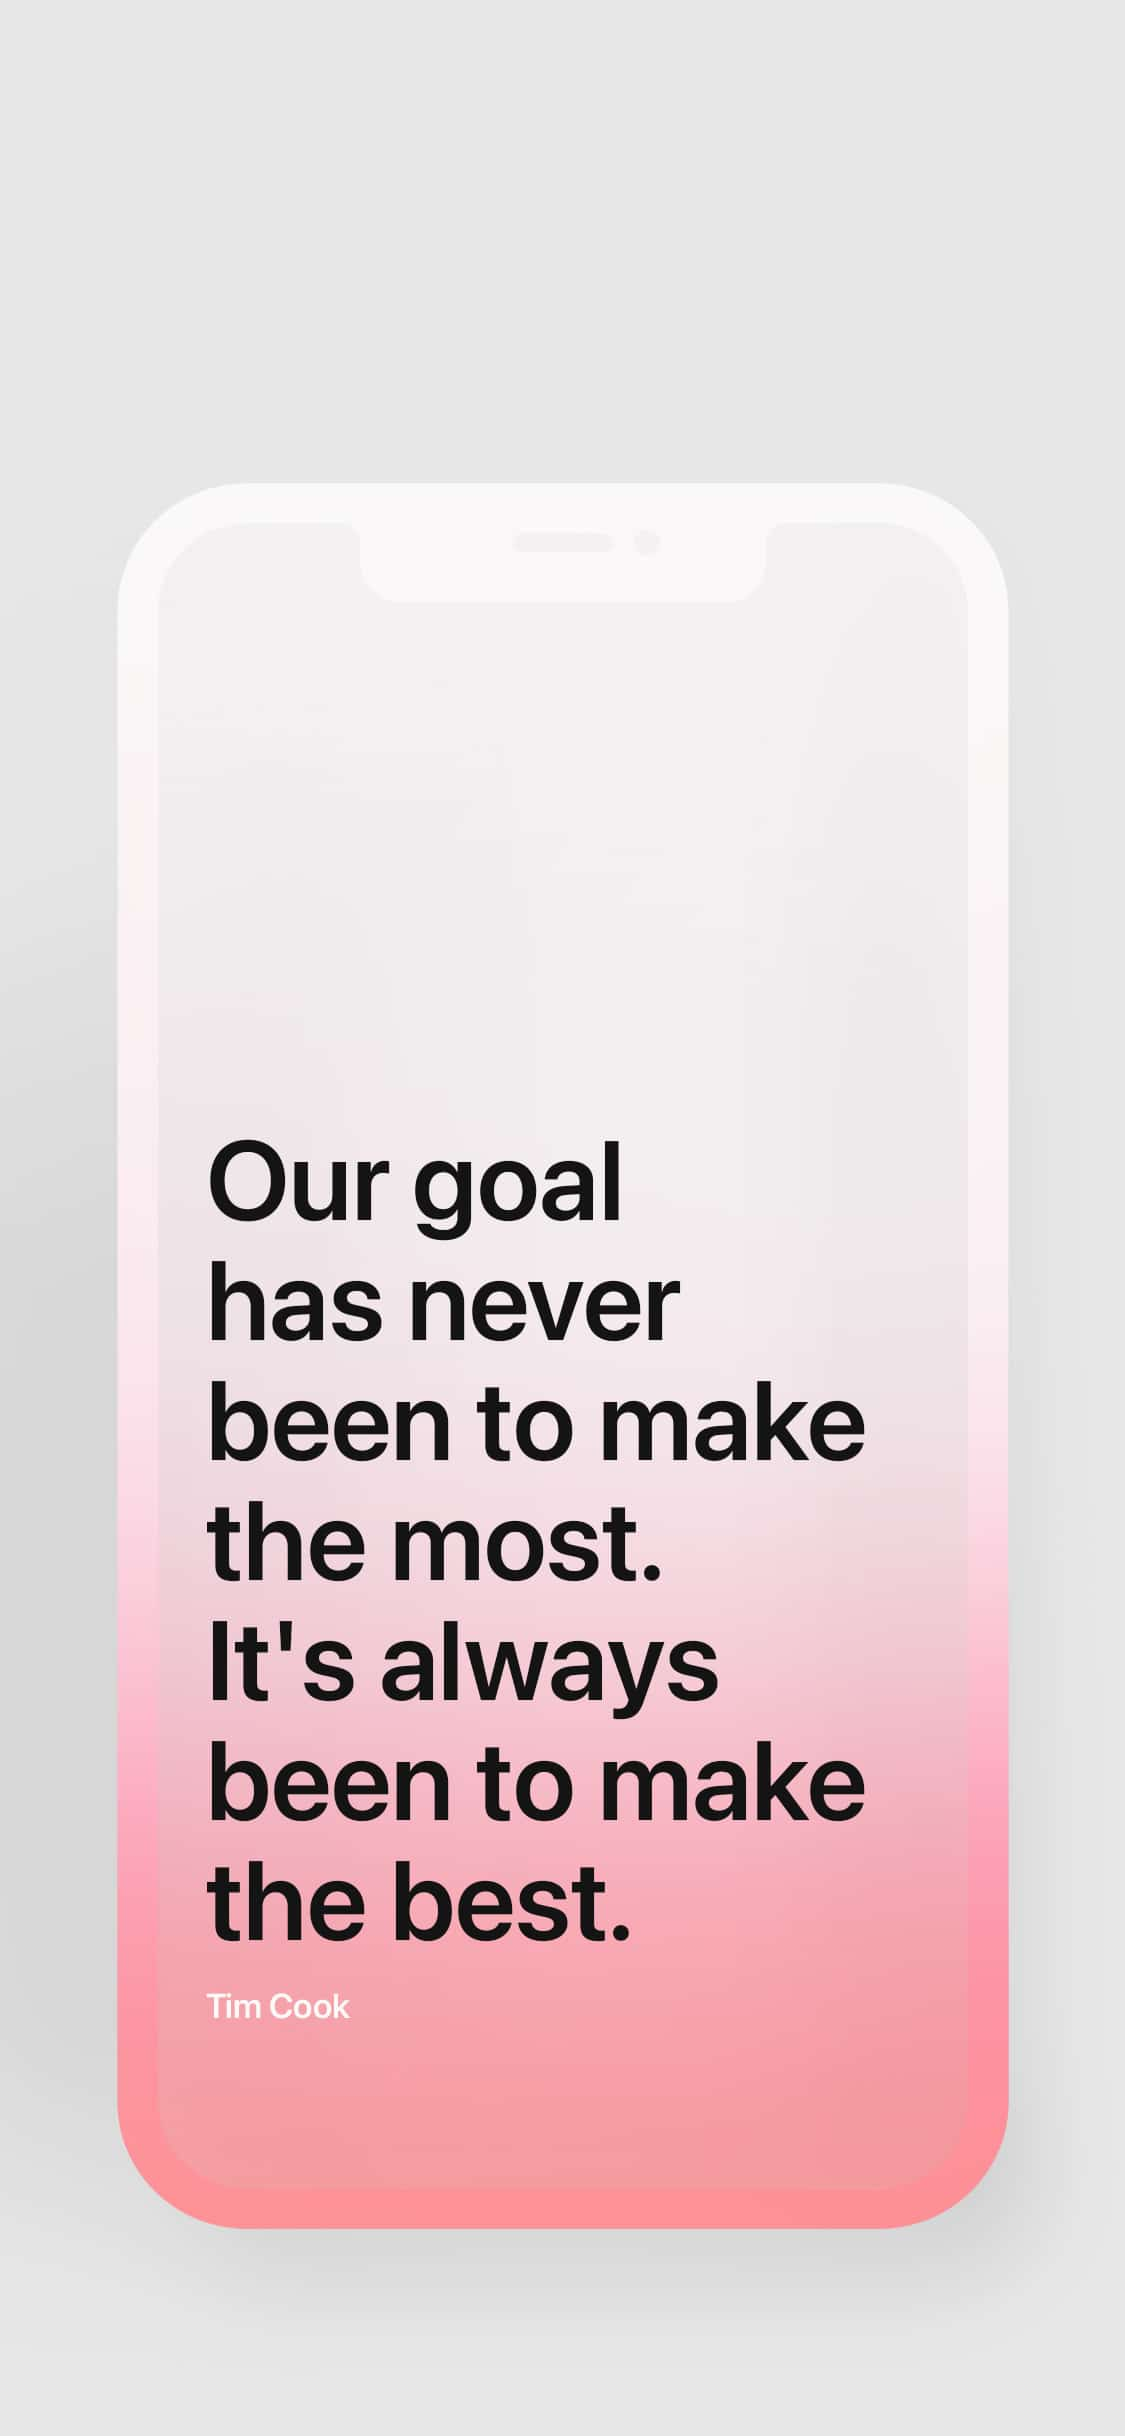 Tim Cook quote 6